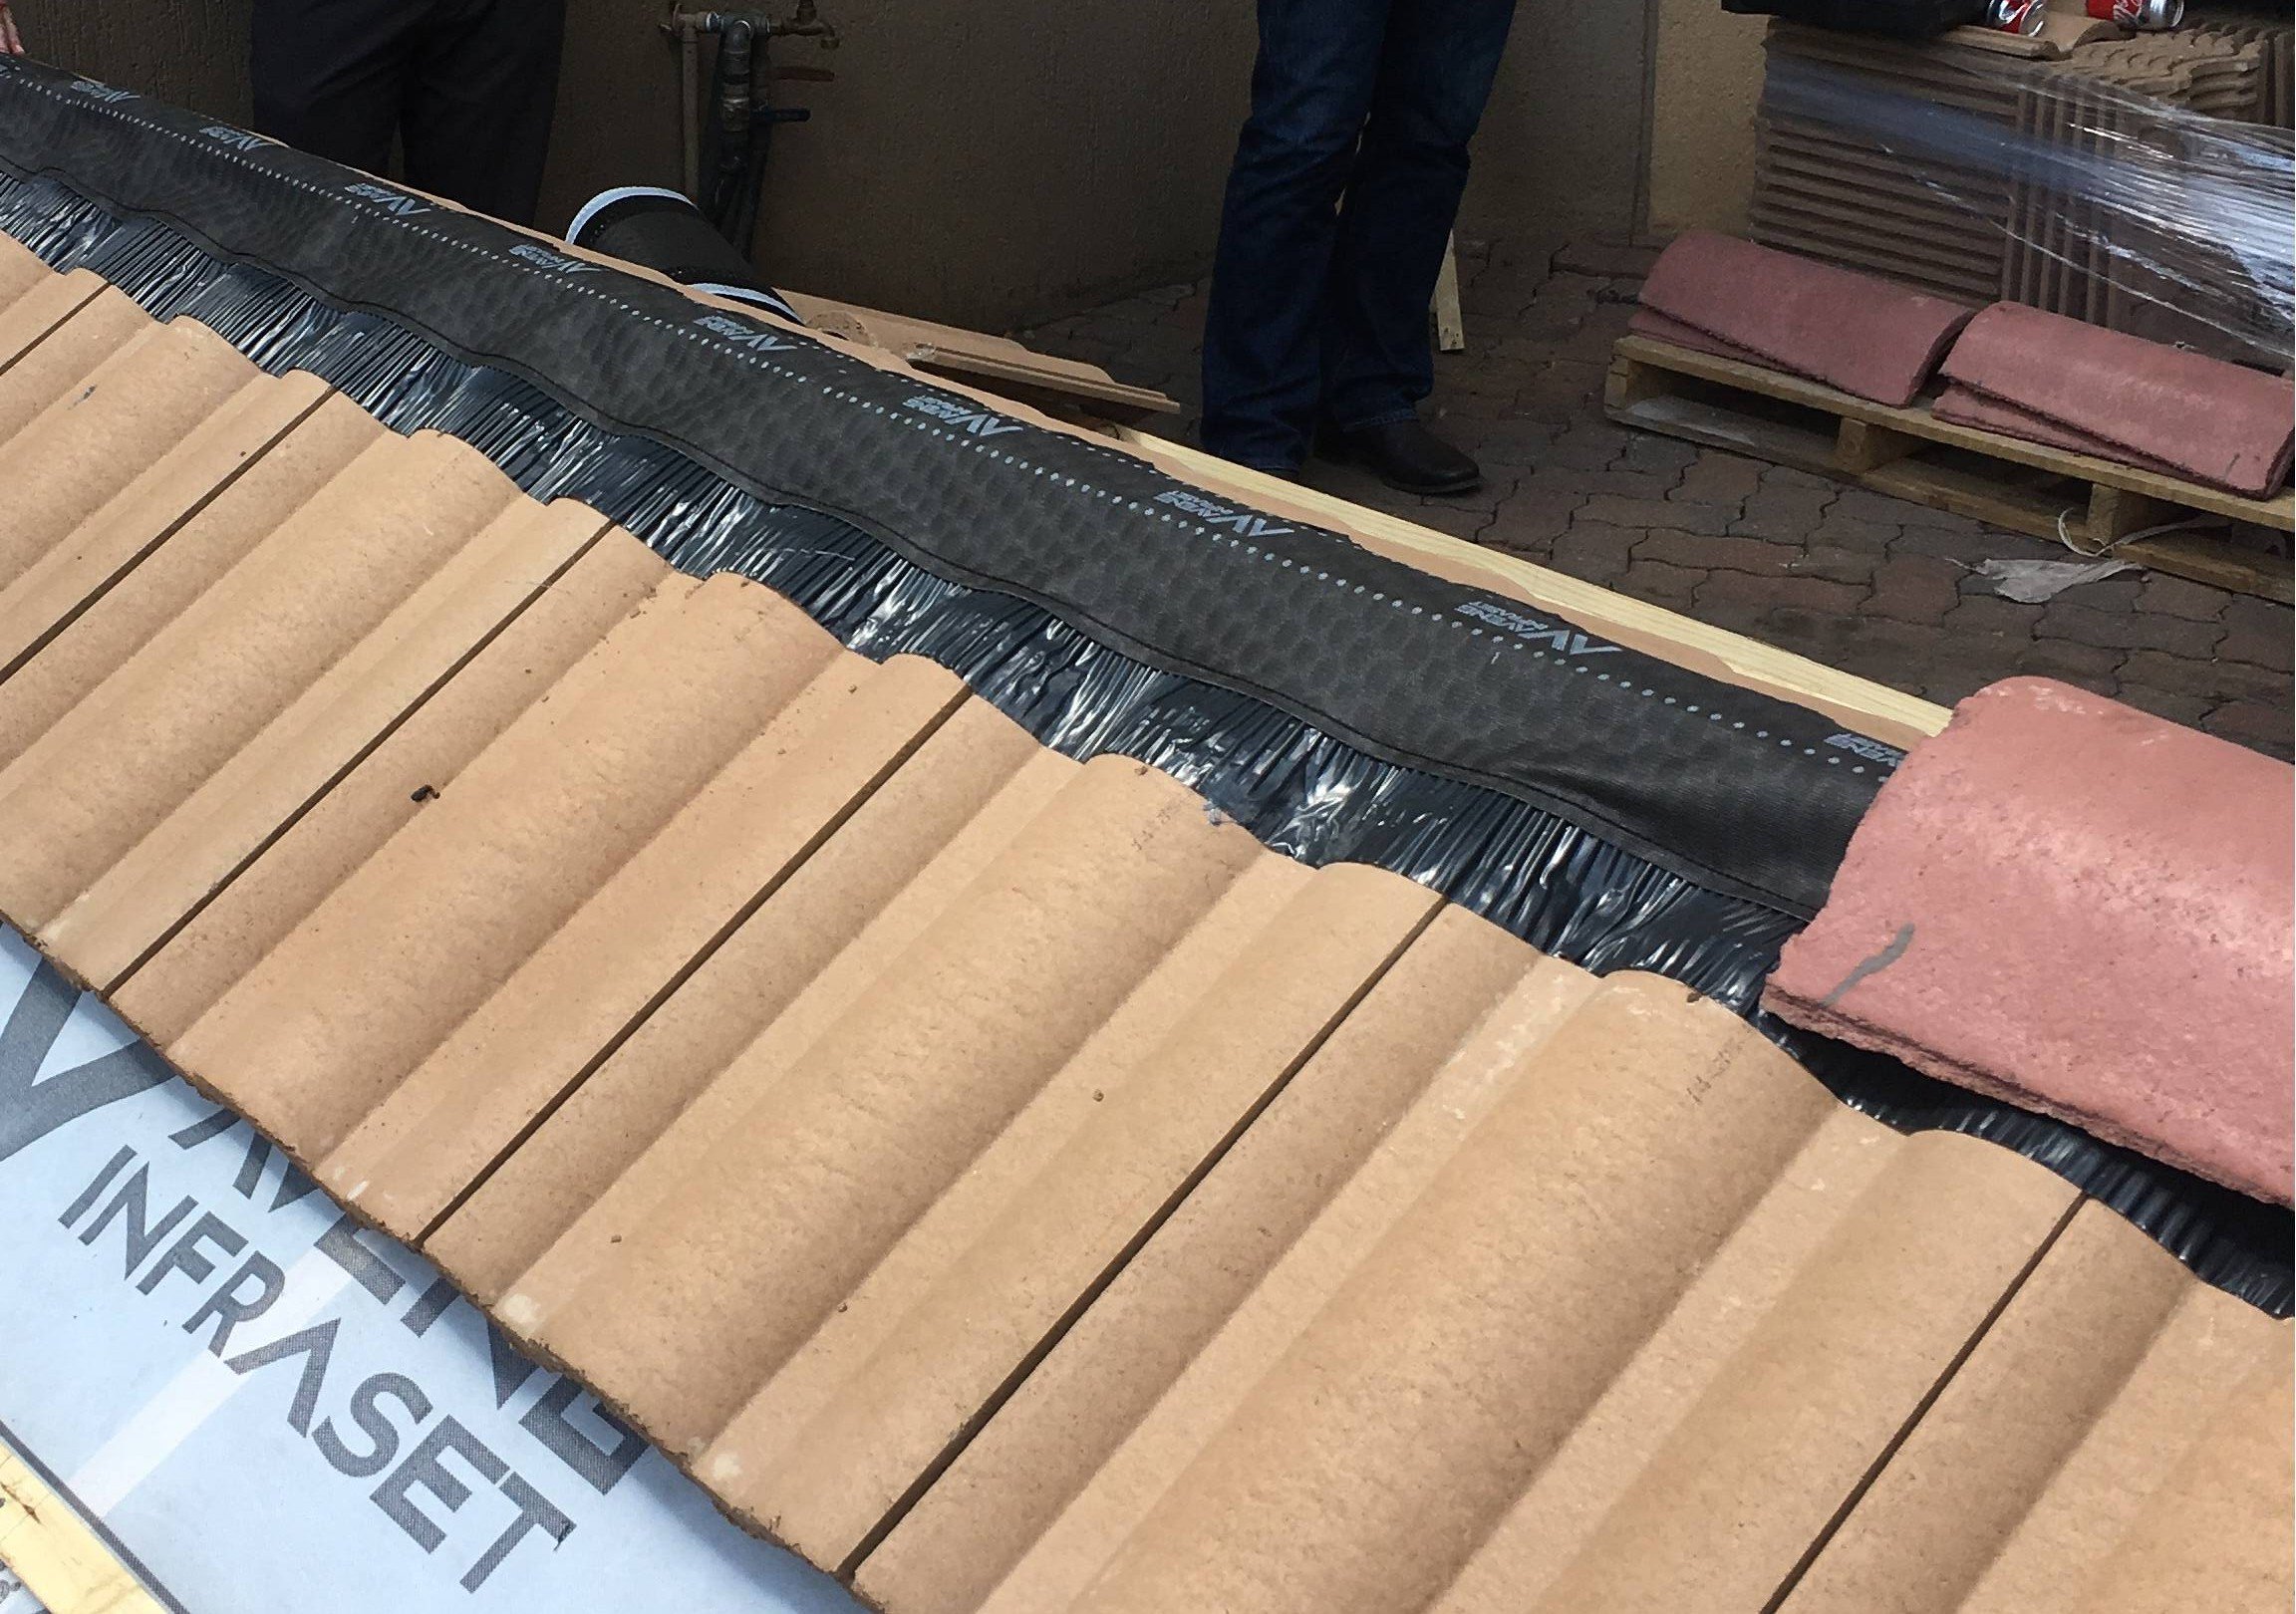 A practical session on dry ridging was presented by Grant Uys from Infraset, which addressed the installation of ridges without the use of mortar, but rather with metal ridge trees, tiles clips and a breathable roll underlay, which make ridge and hip installation fairly easy and clean.